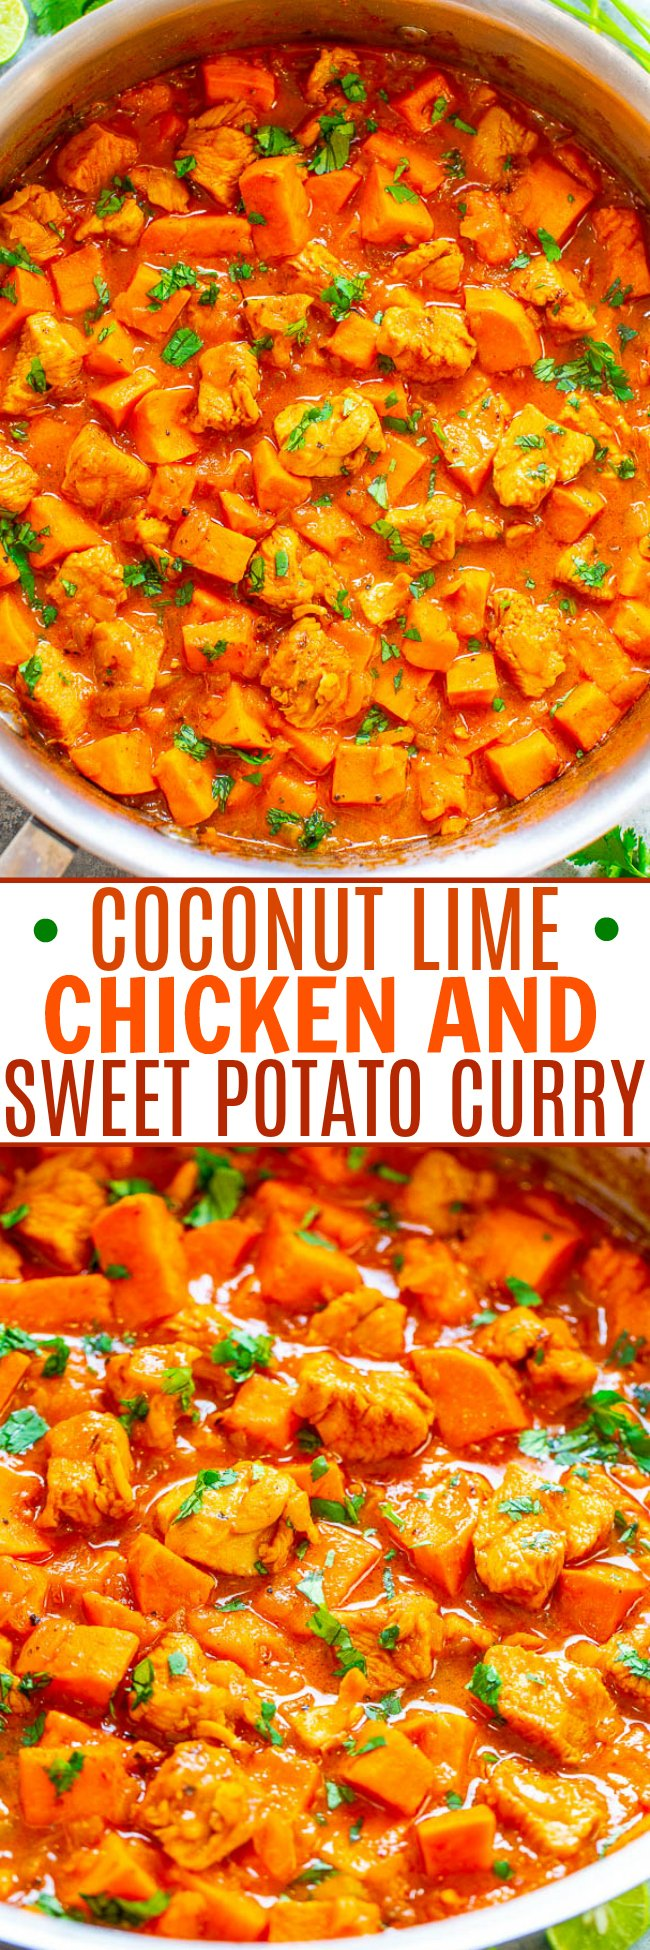 Coconut Lime Chicken and Sweet Potato Curry - An EASY, one-skillet curry that's ready in 20 minutes and tastes BETTER than a restaurant!! Juicy chicken and tender sweet potatoes simmer in a lime-scented coconut milk sauce that tastes AMAZING! Healthy comfort food!!